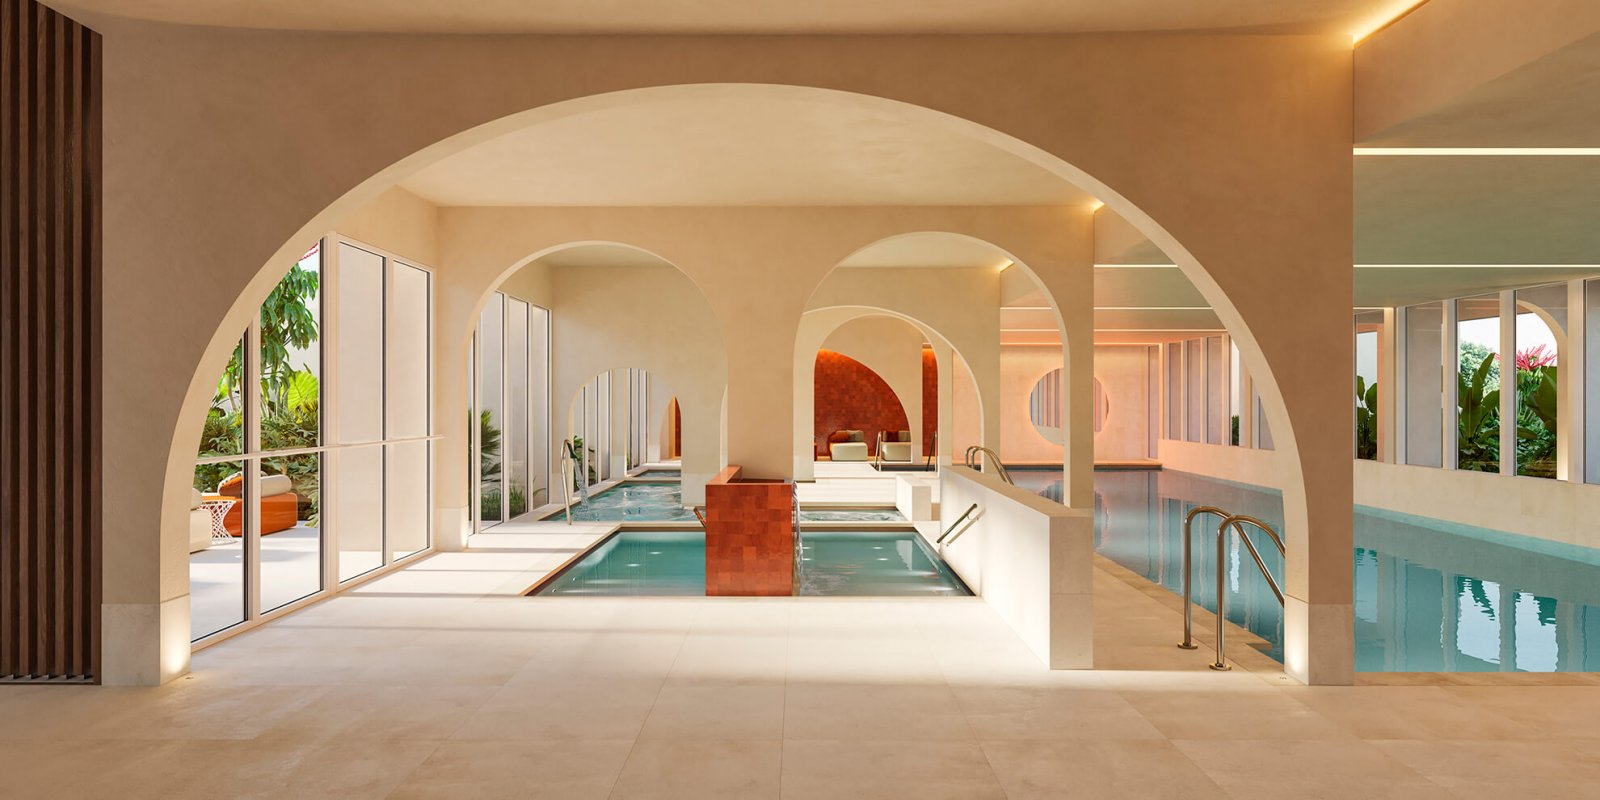 View of the pool and interior facade of the Sotogrande